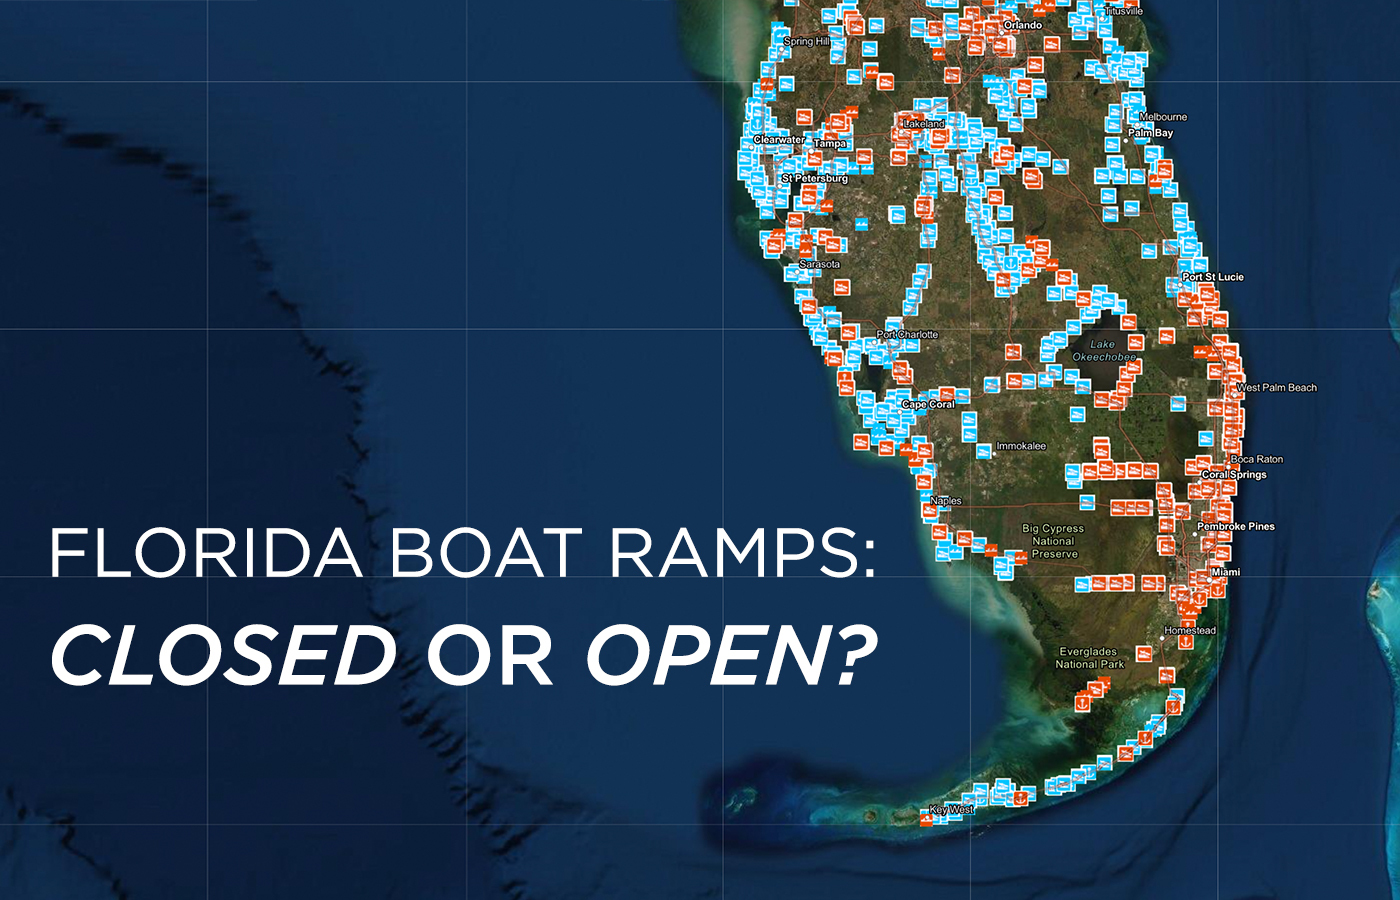 Florida Boat Ramp Map What Boat Ramps Are Open In Florida? [Live Map]